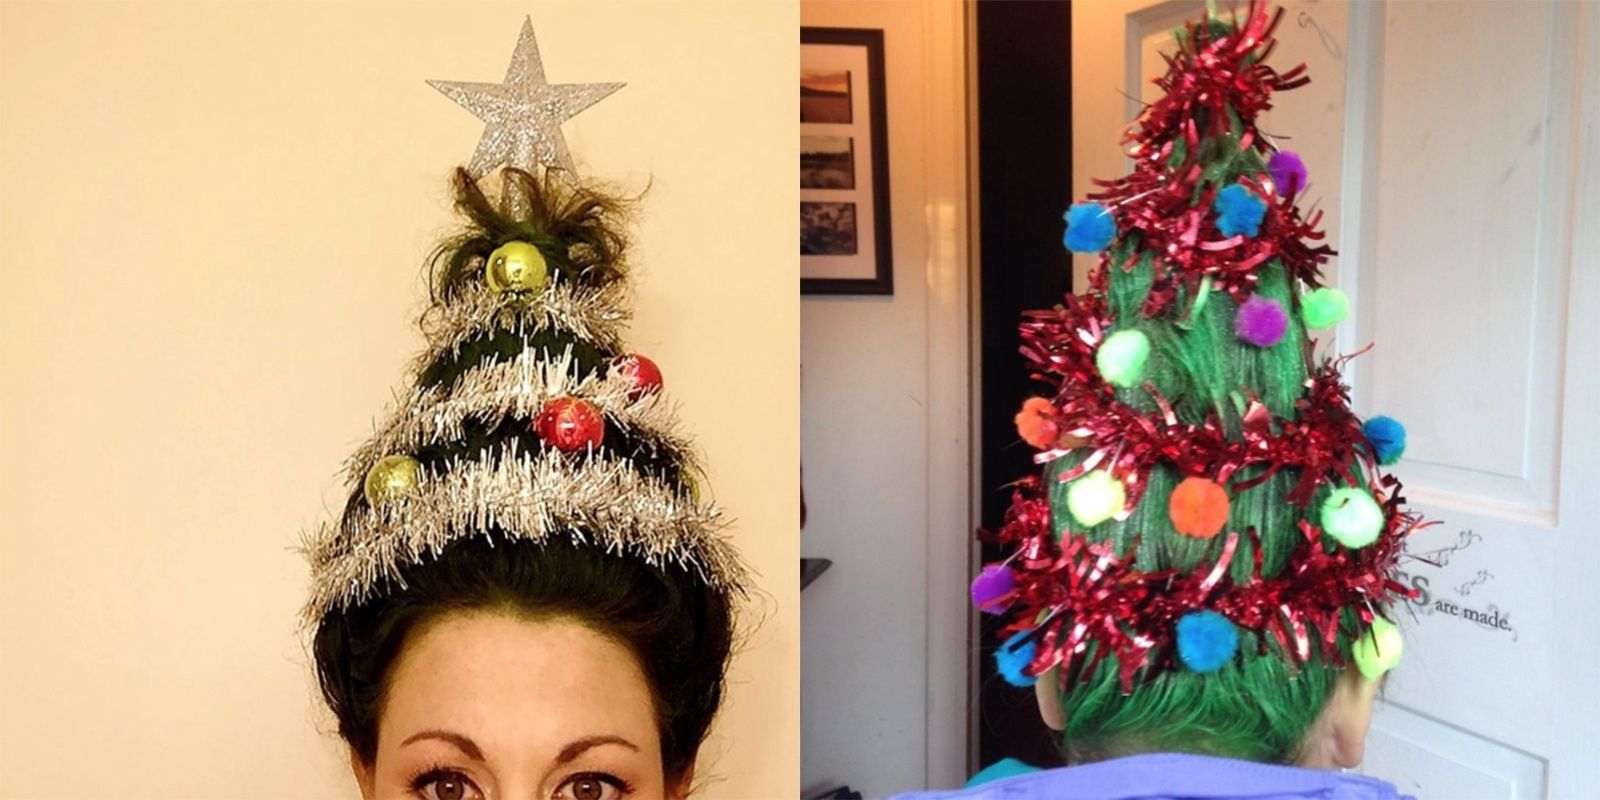 Christmas Tree Hair Is The Next Crazy Beauty Trend And It S Equally Bizarre And Festive Christmas Tree Hair Tree Costume Christmas Tree Costume